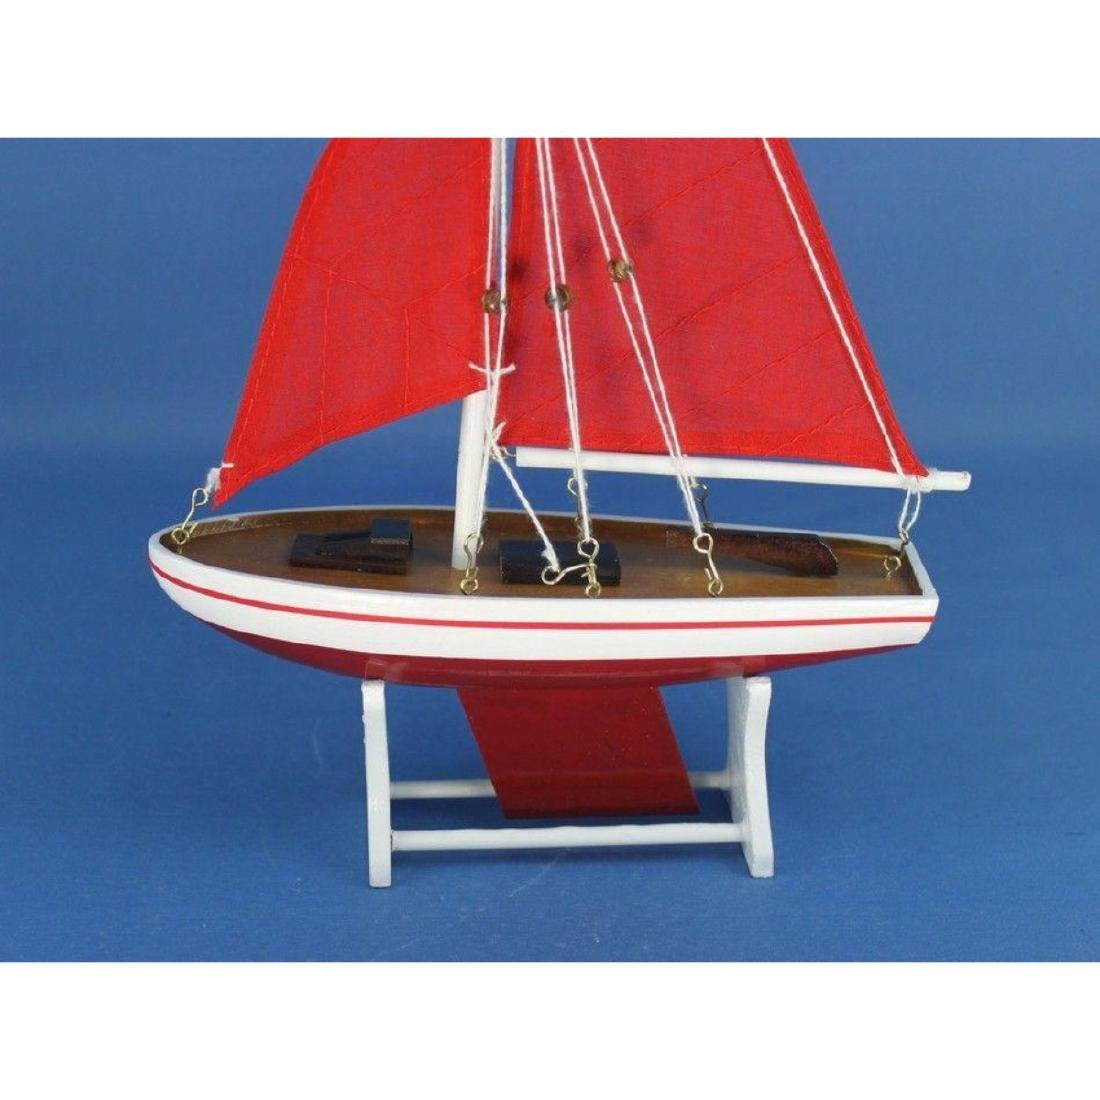 "Wooden It Floats 12"" - Red with Red Sails Floating - 4"